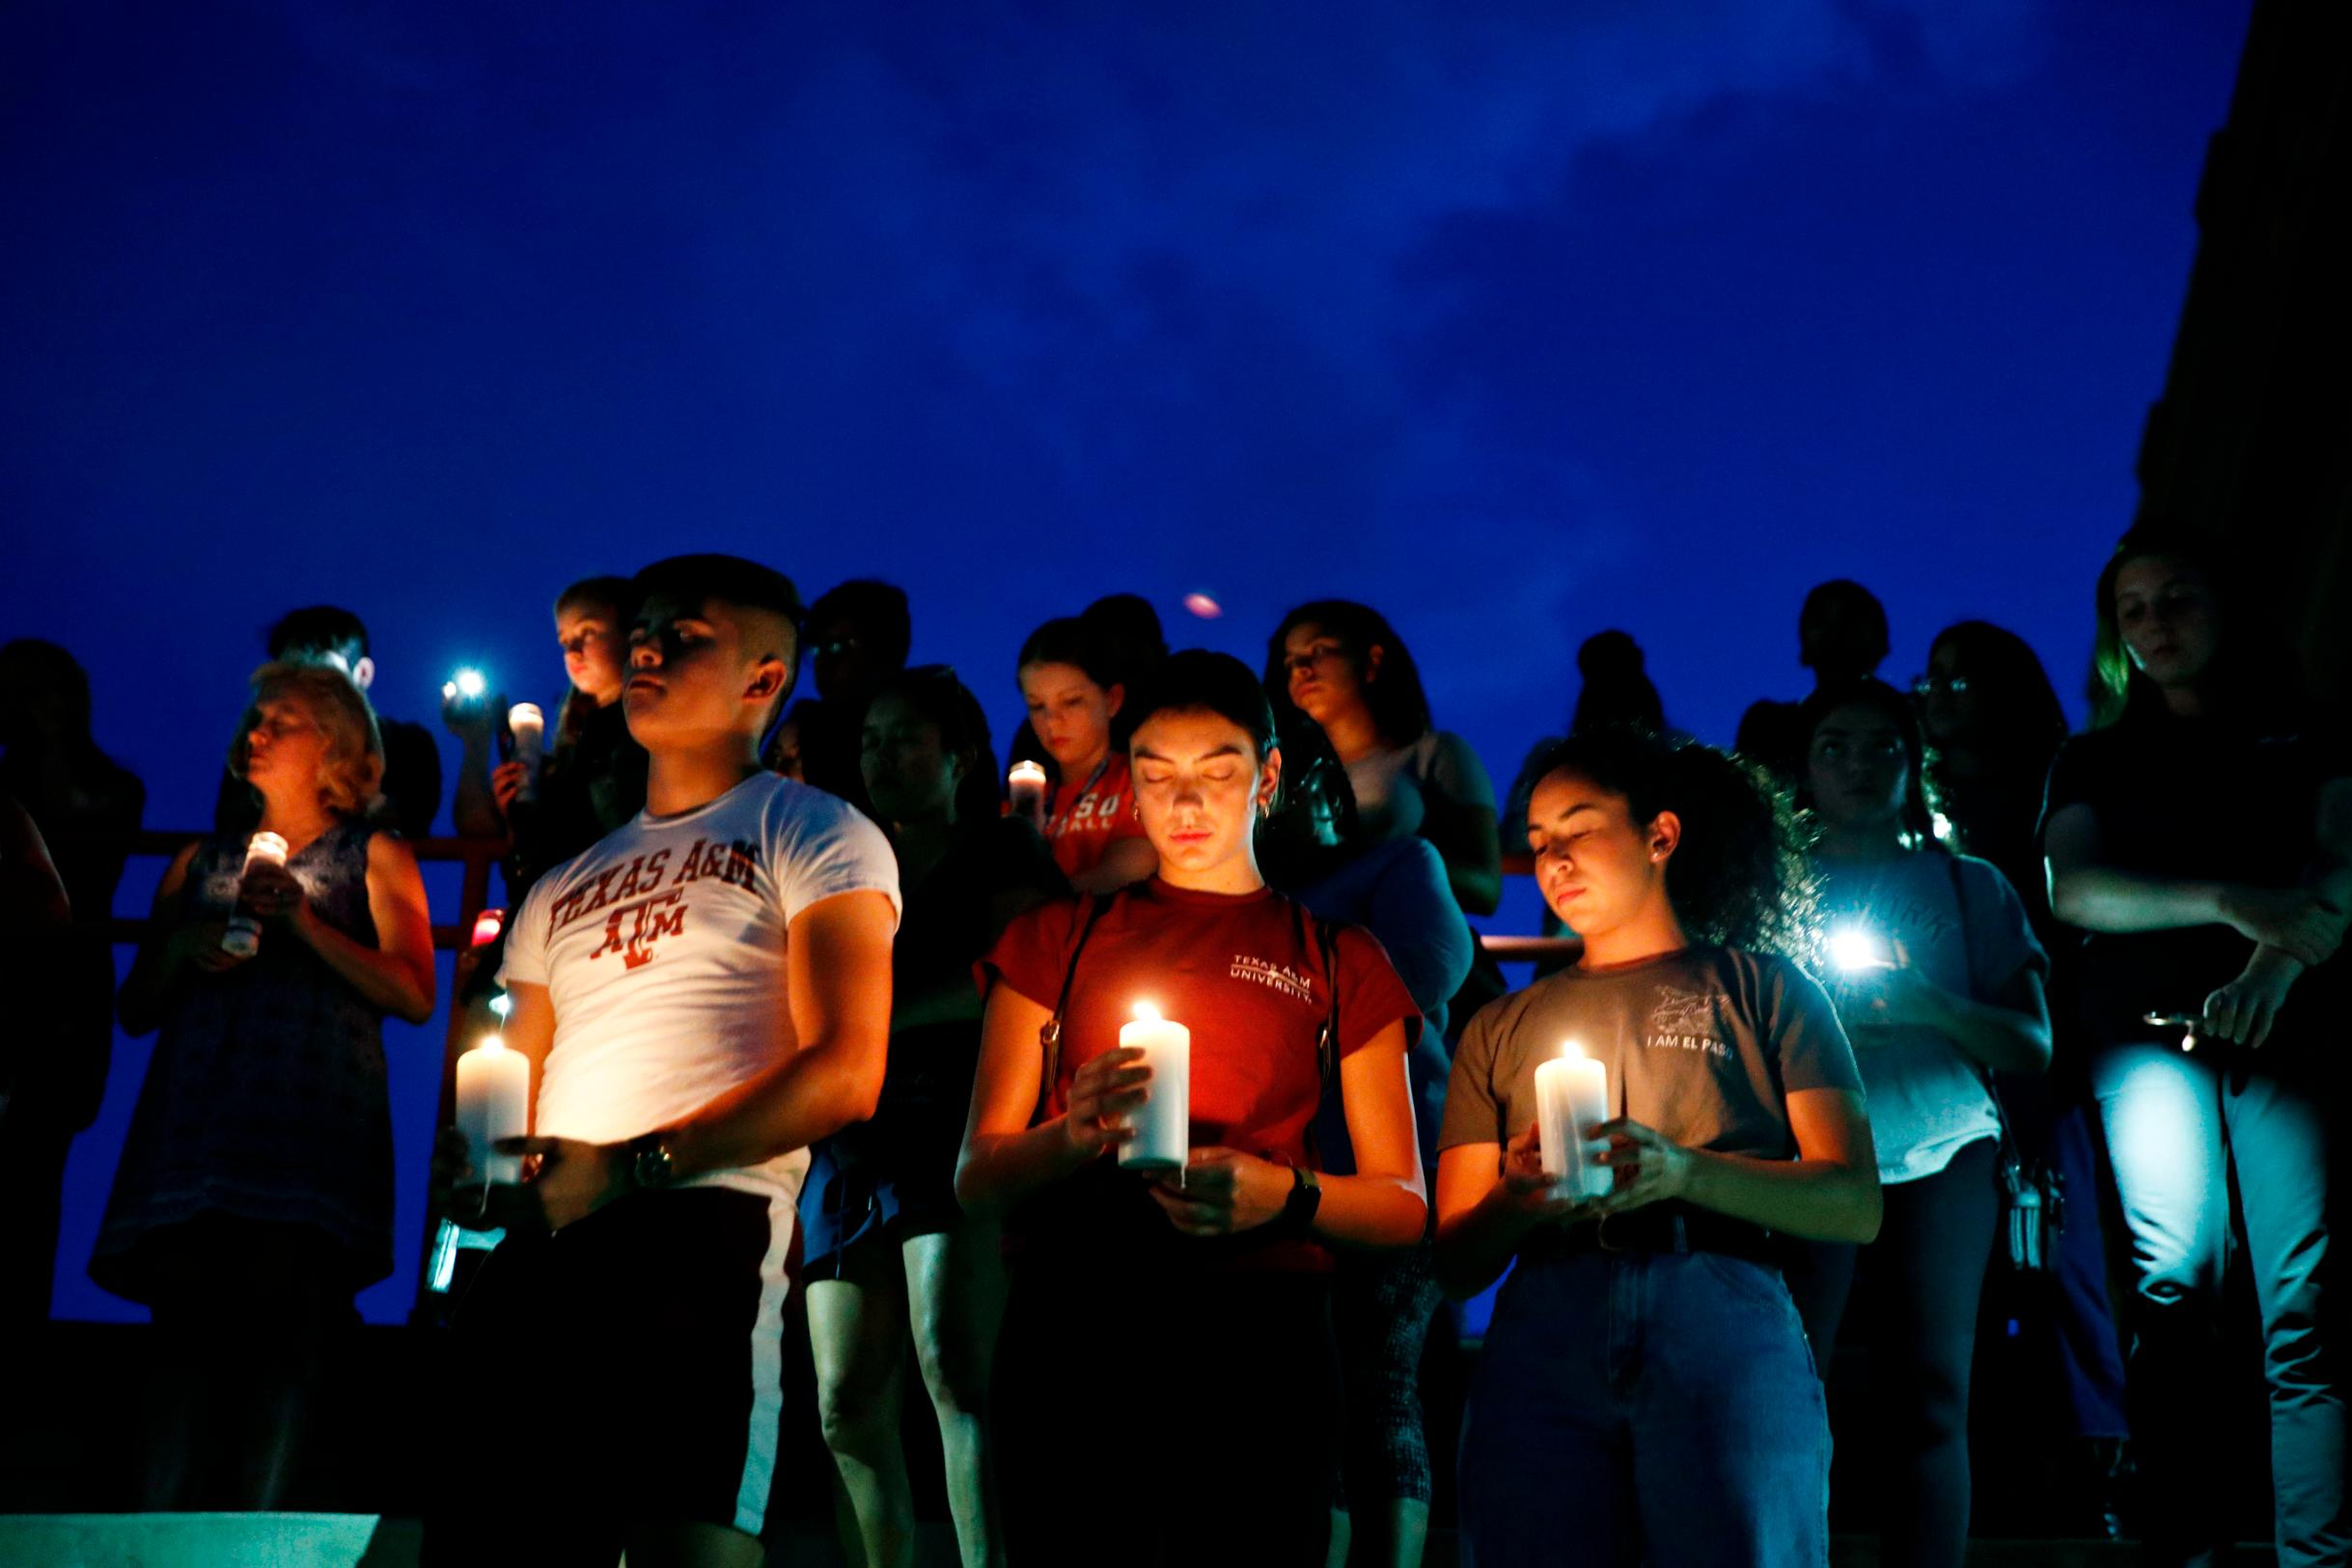 People in El Paso, Texas attend a vigil Saturday for the victims of the shooting that killed 20 earlier in the day.